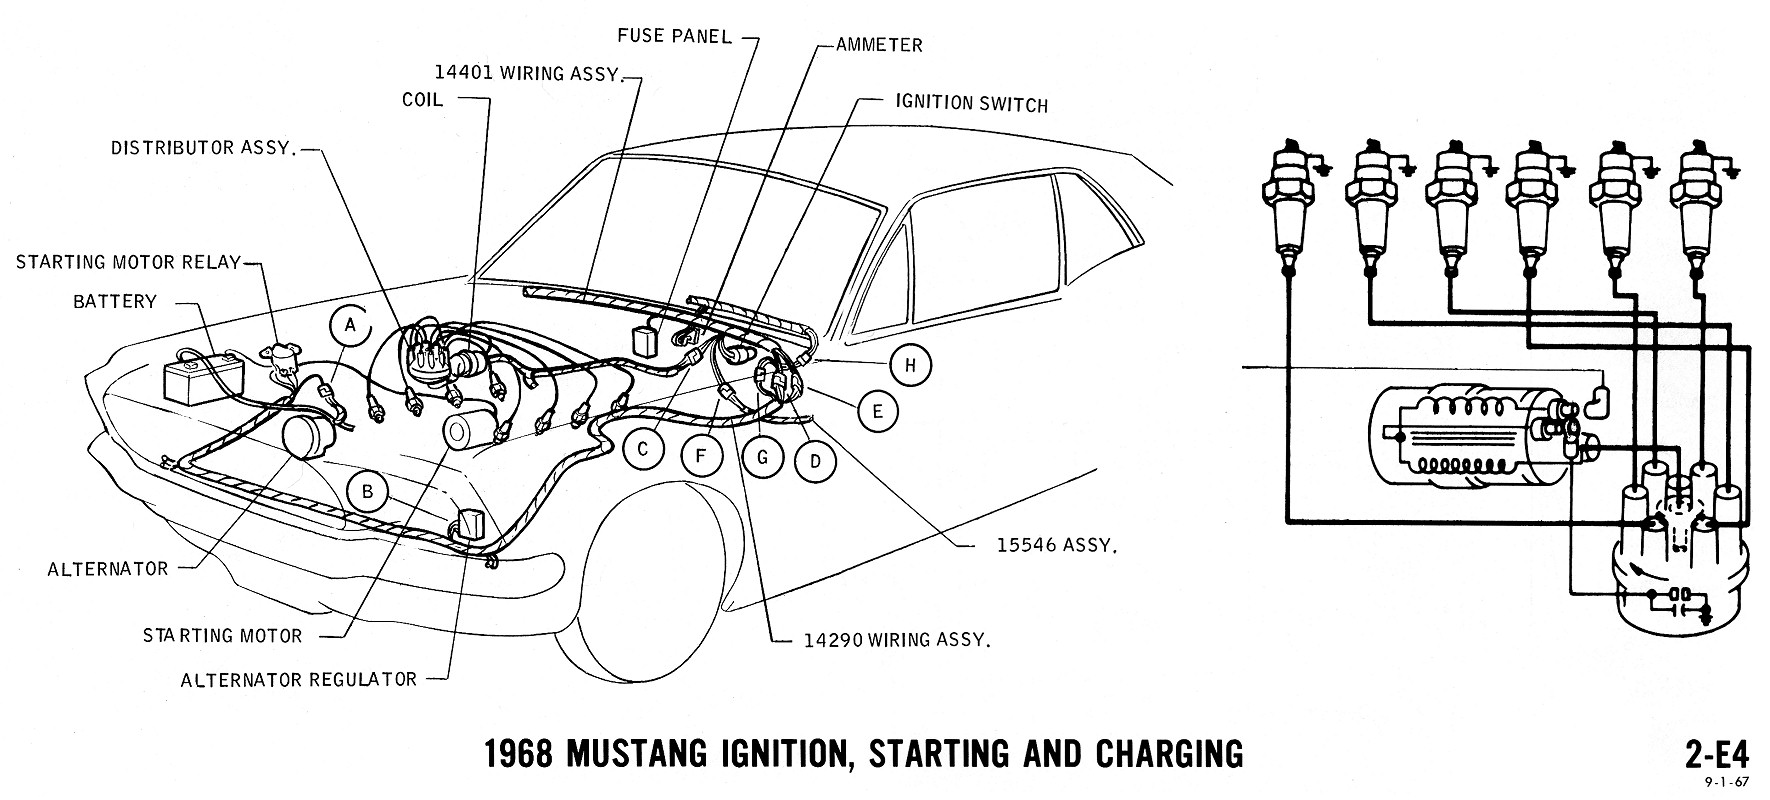 1968 mustang wiring diagram ignition starting charging 2 1968 mustang wiring diagrams and vacuum schematics average joe 68 mustang alternator wiring diagram at nearapp.co